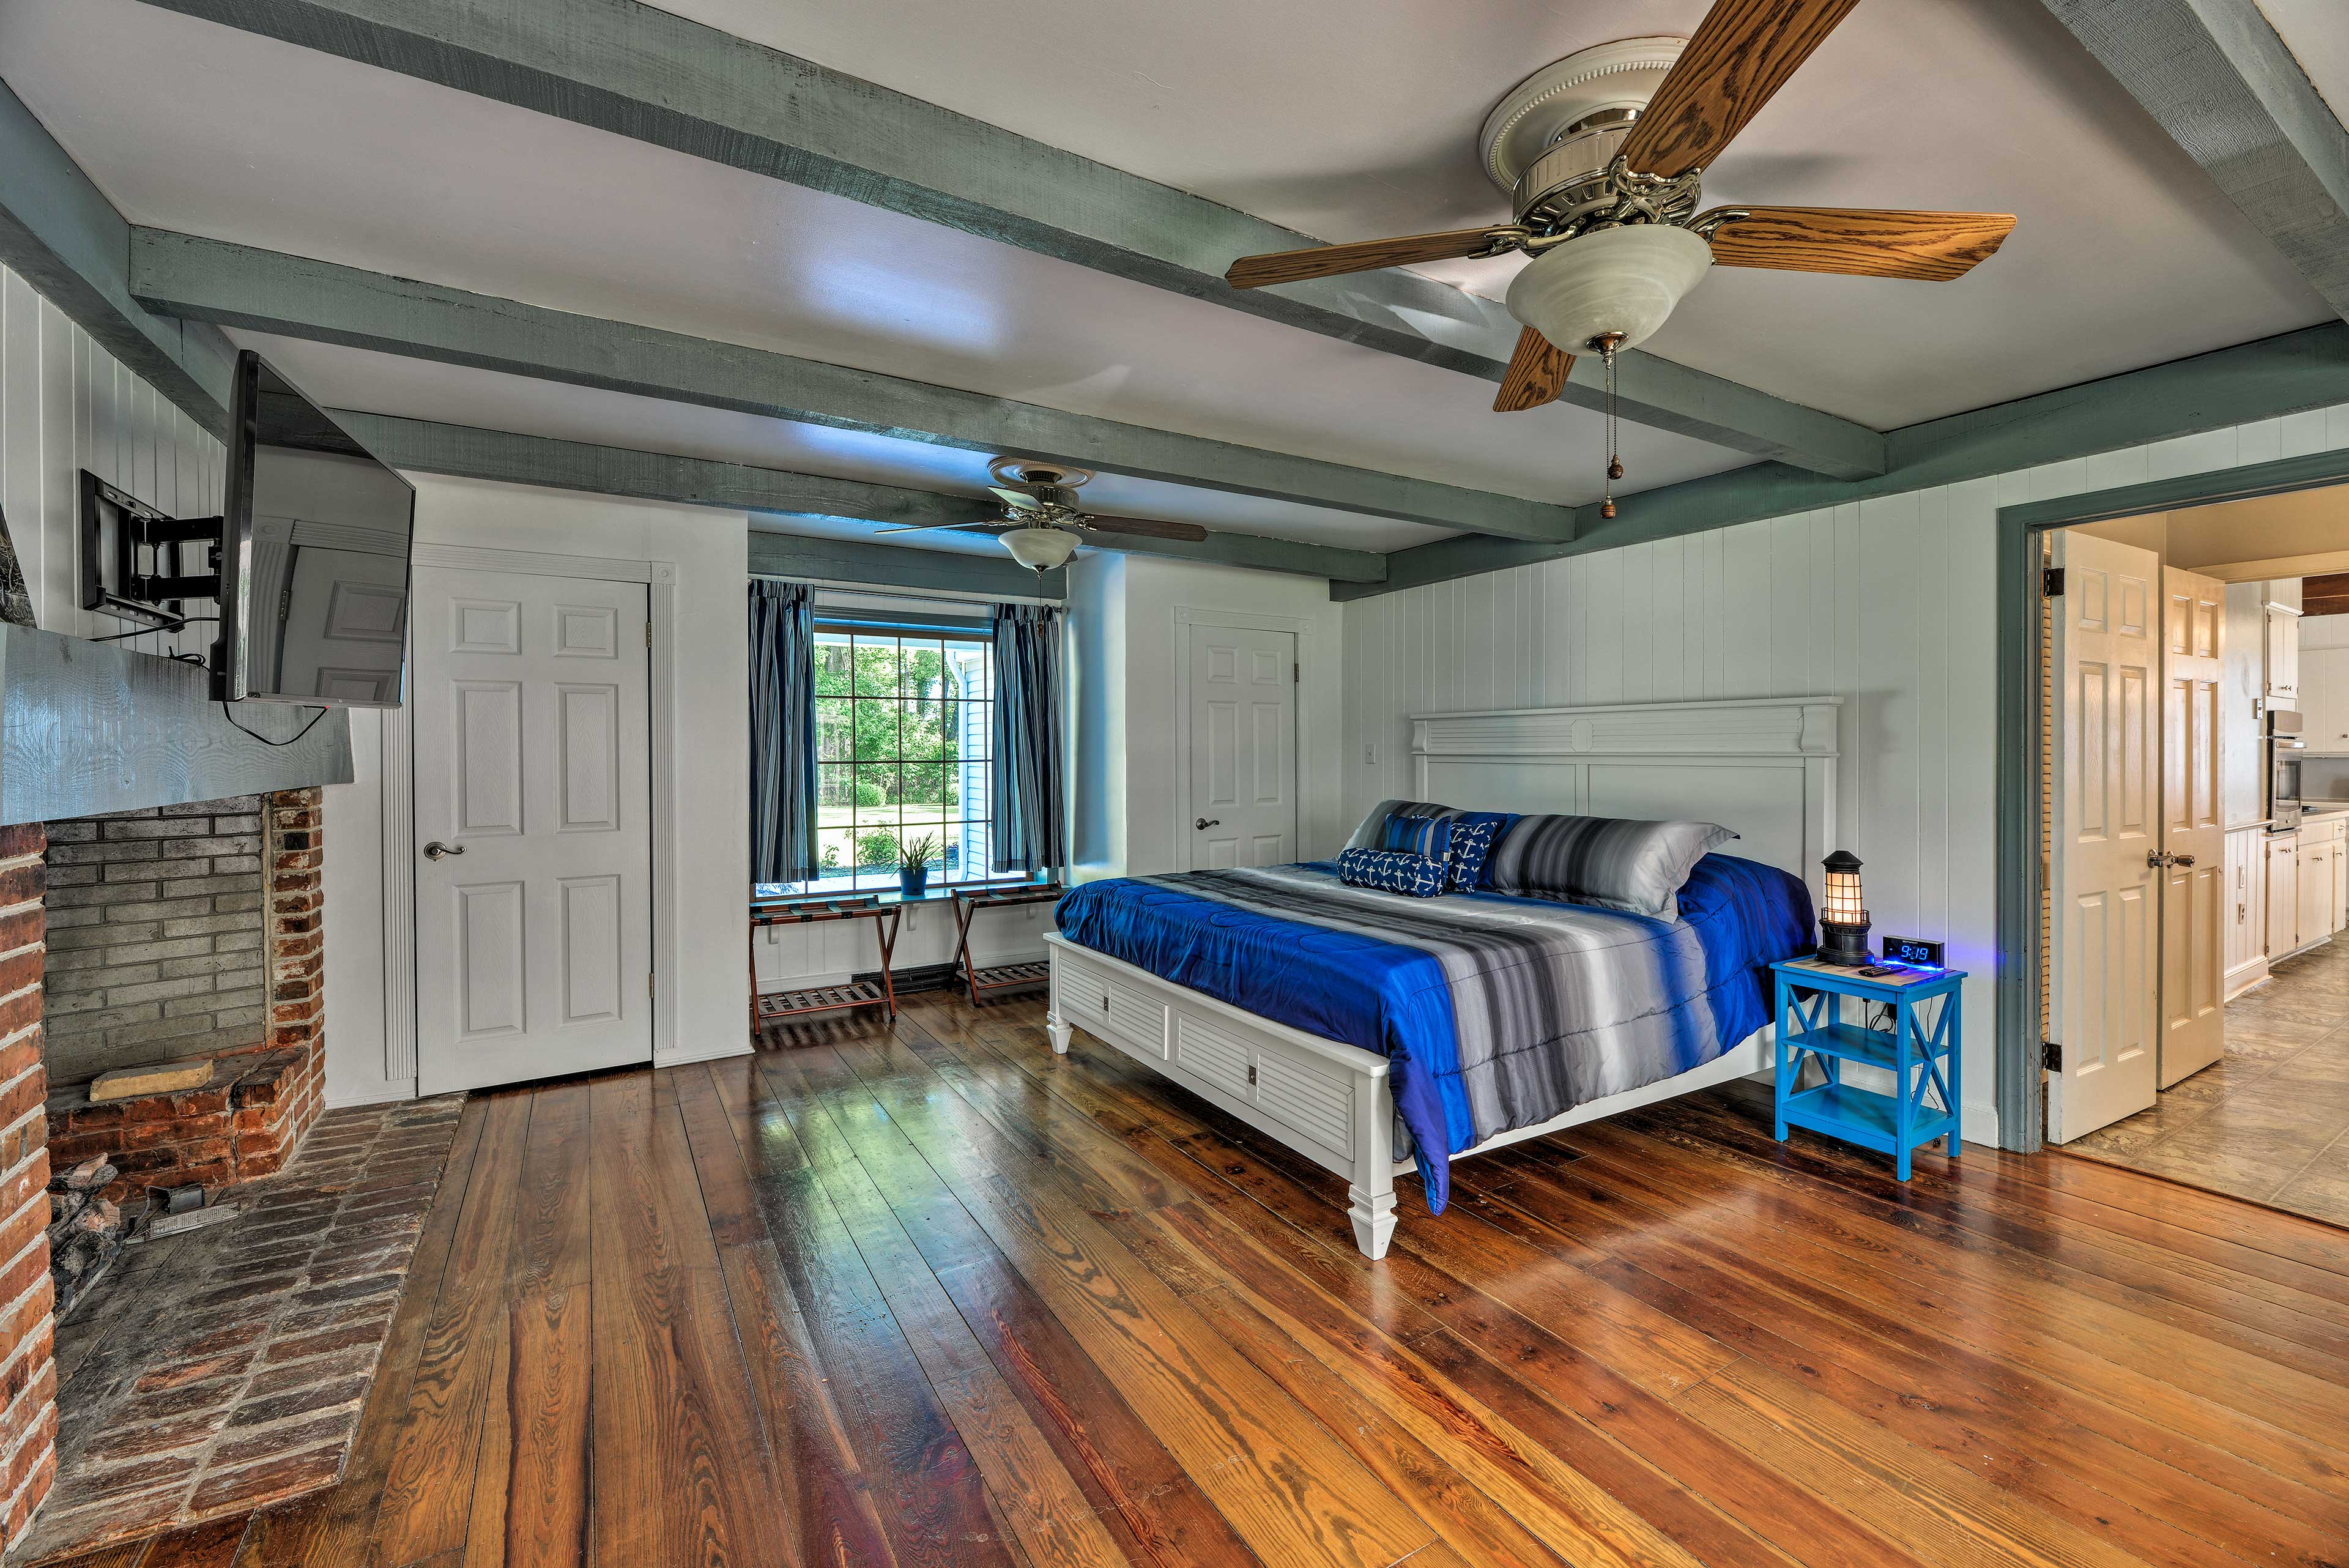 Two lucky guests can claim the first master bedroom!